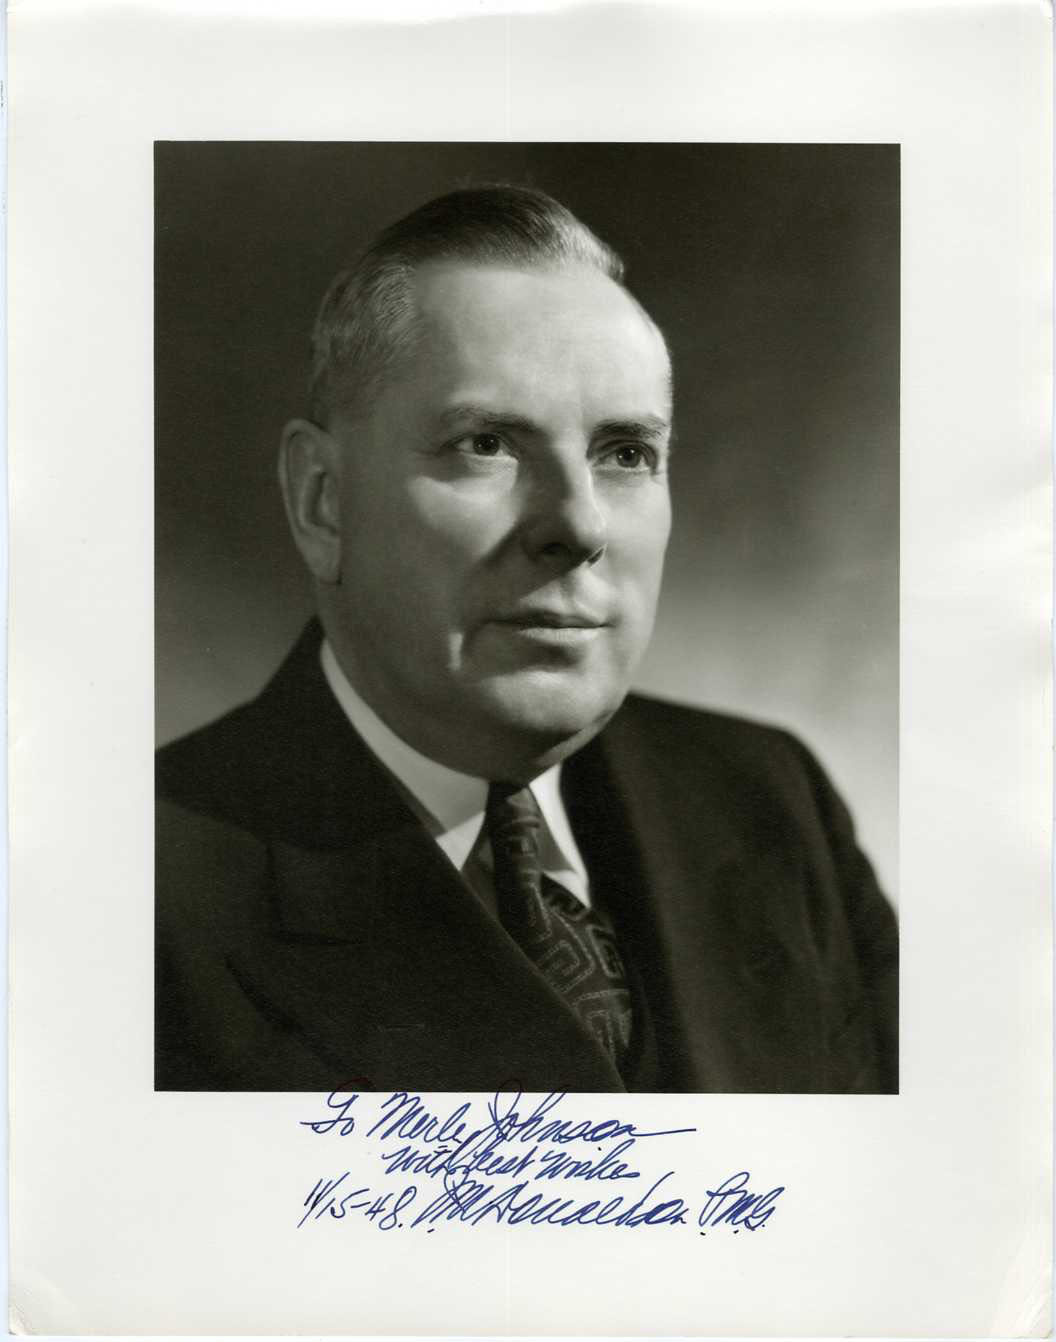 J.M. DONALDSON (POSTMASTER GENERAL) - SIGNED POLITICAL PRINTED PHOTO 1950s